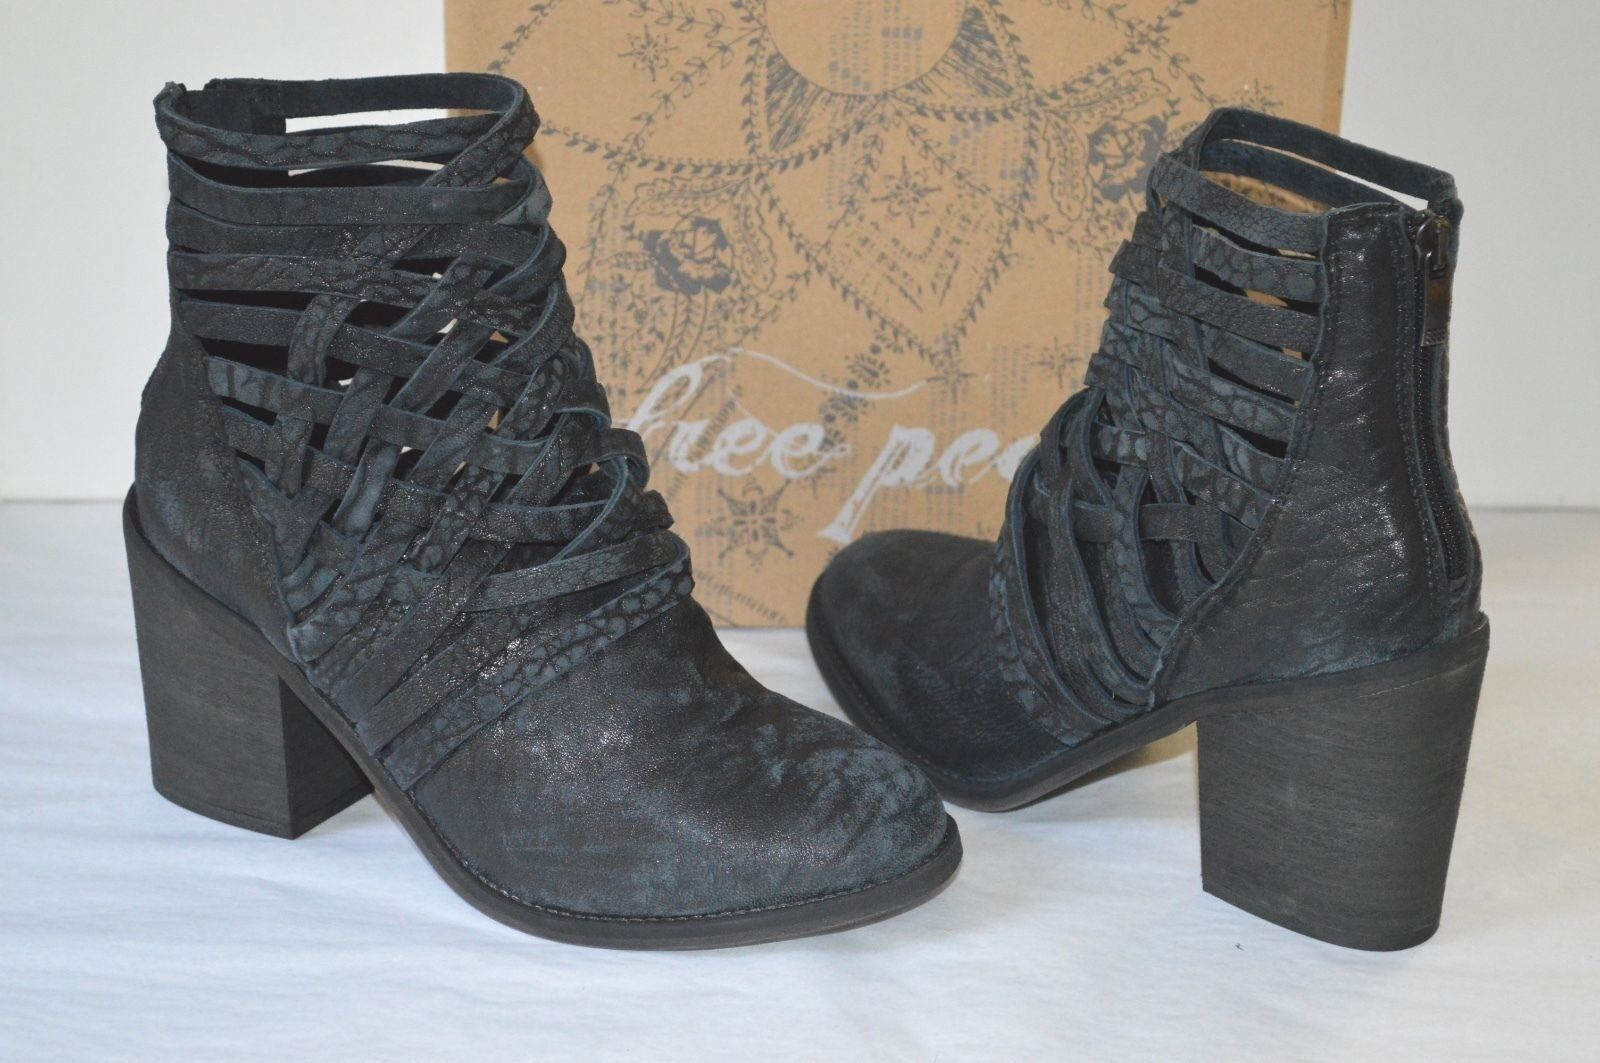 New $198 Free People Carrera Heel Bootie/Boots/Ankle/Short Black Leather SoldOut